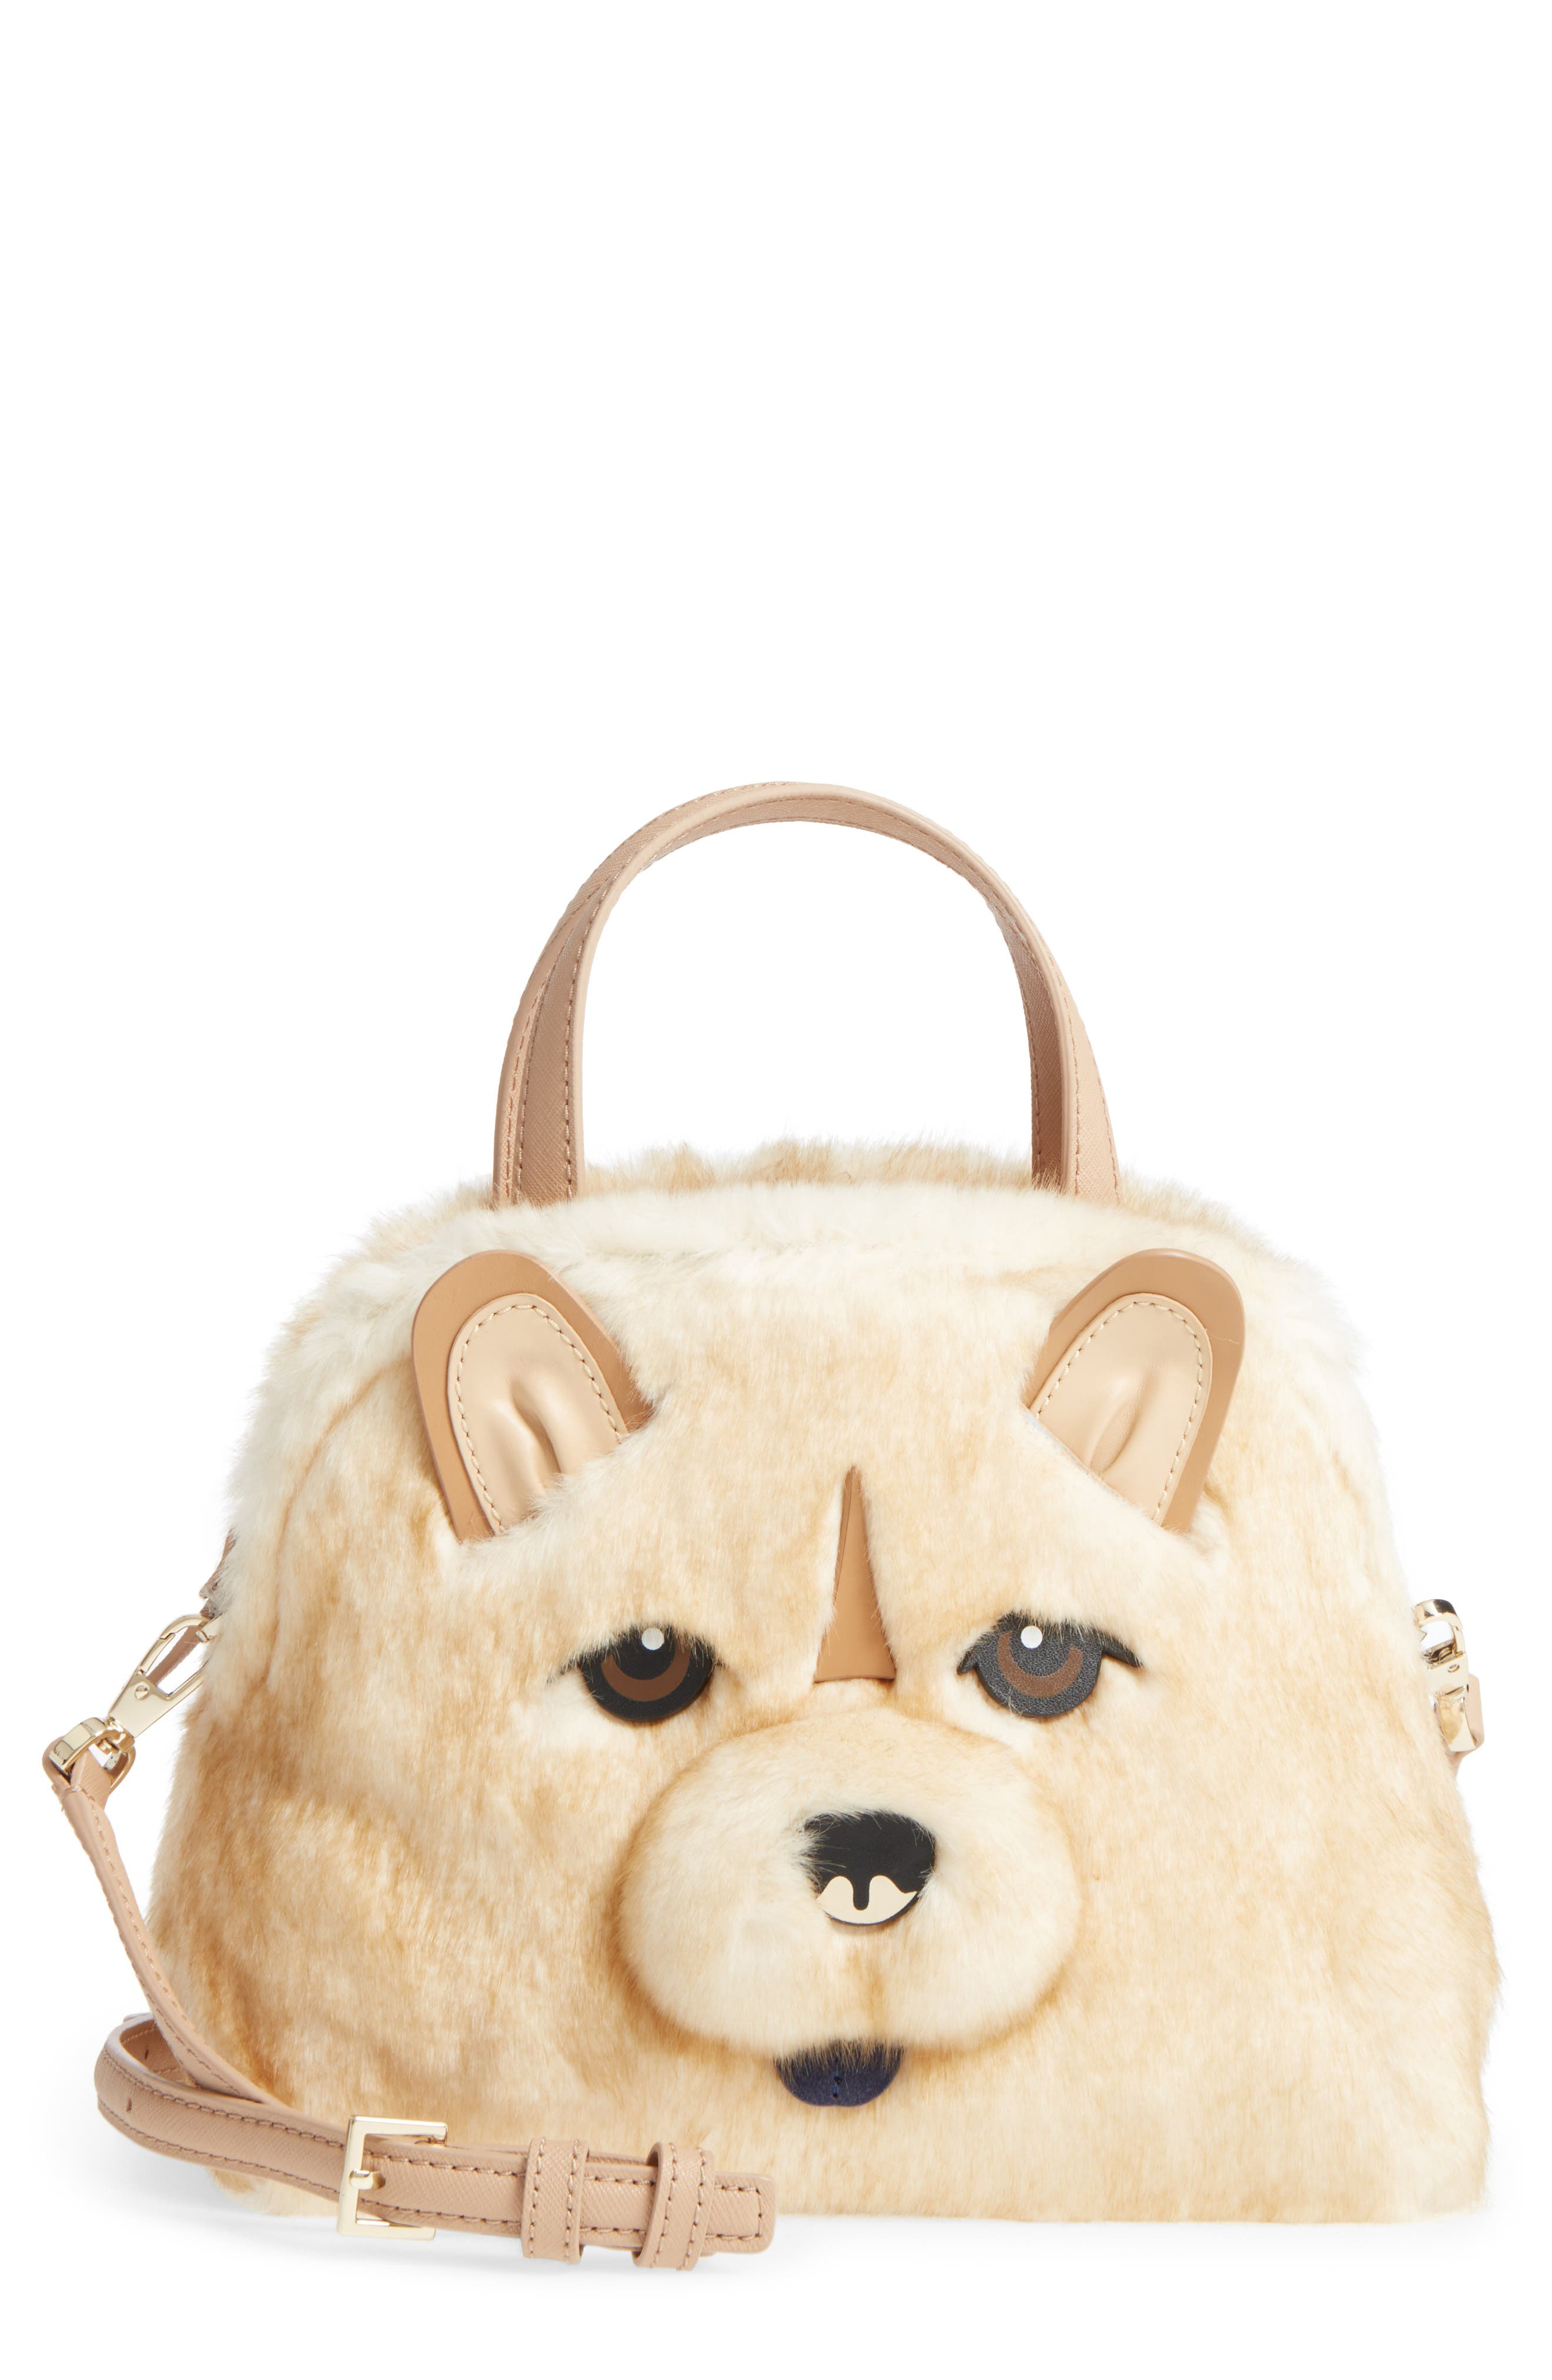 Kate Spade Leathers YEAR OF THE DOG CHOW CHOW - LOTTIE SATCHEL - BEIGE